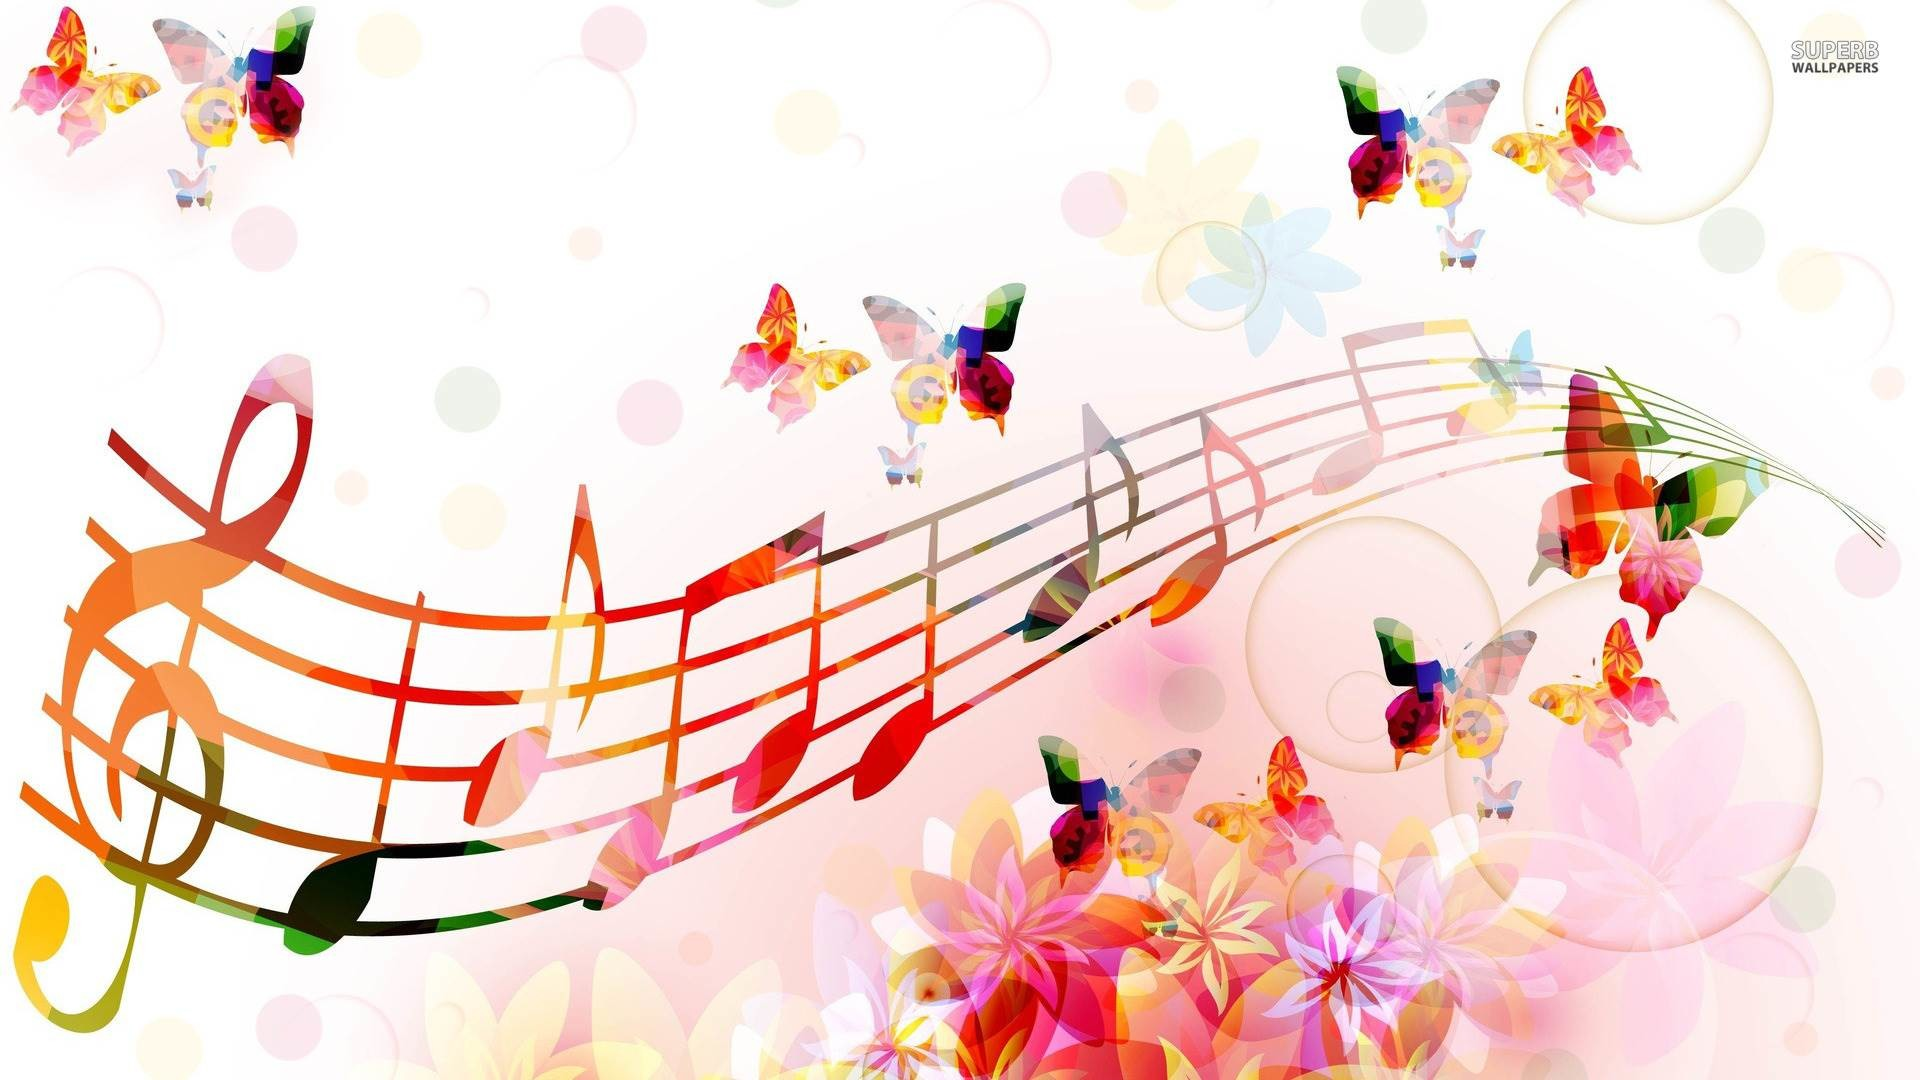 1920x1080 Music Wallpapers p HD Pictures One HD Wallpaper Pictures 1920×1080 Wallpapers  Music | Adorable